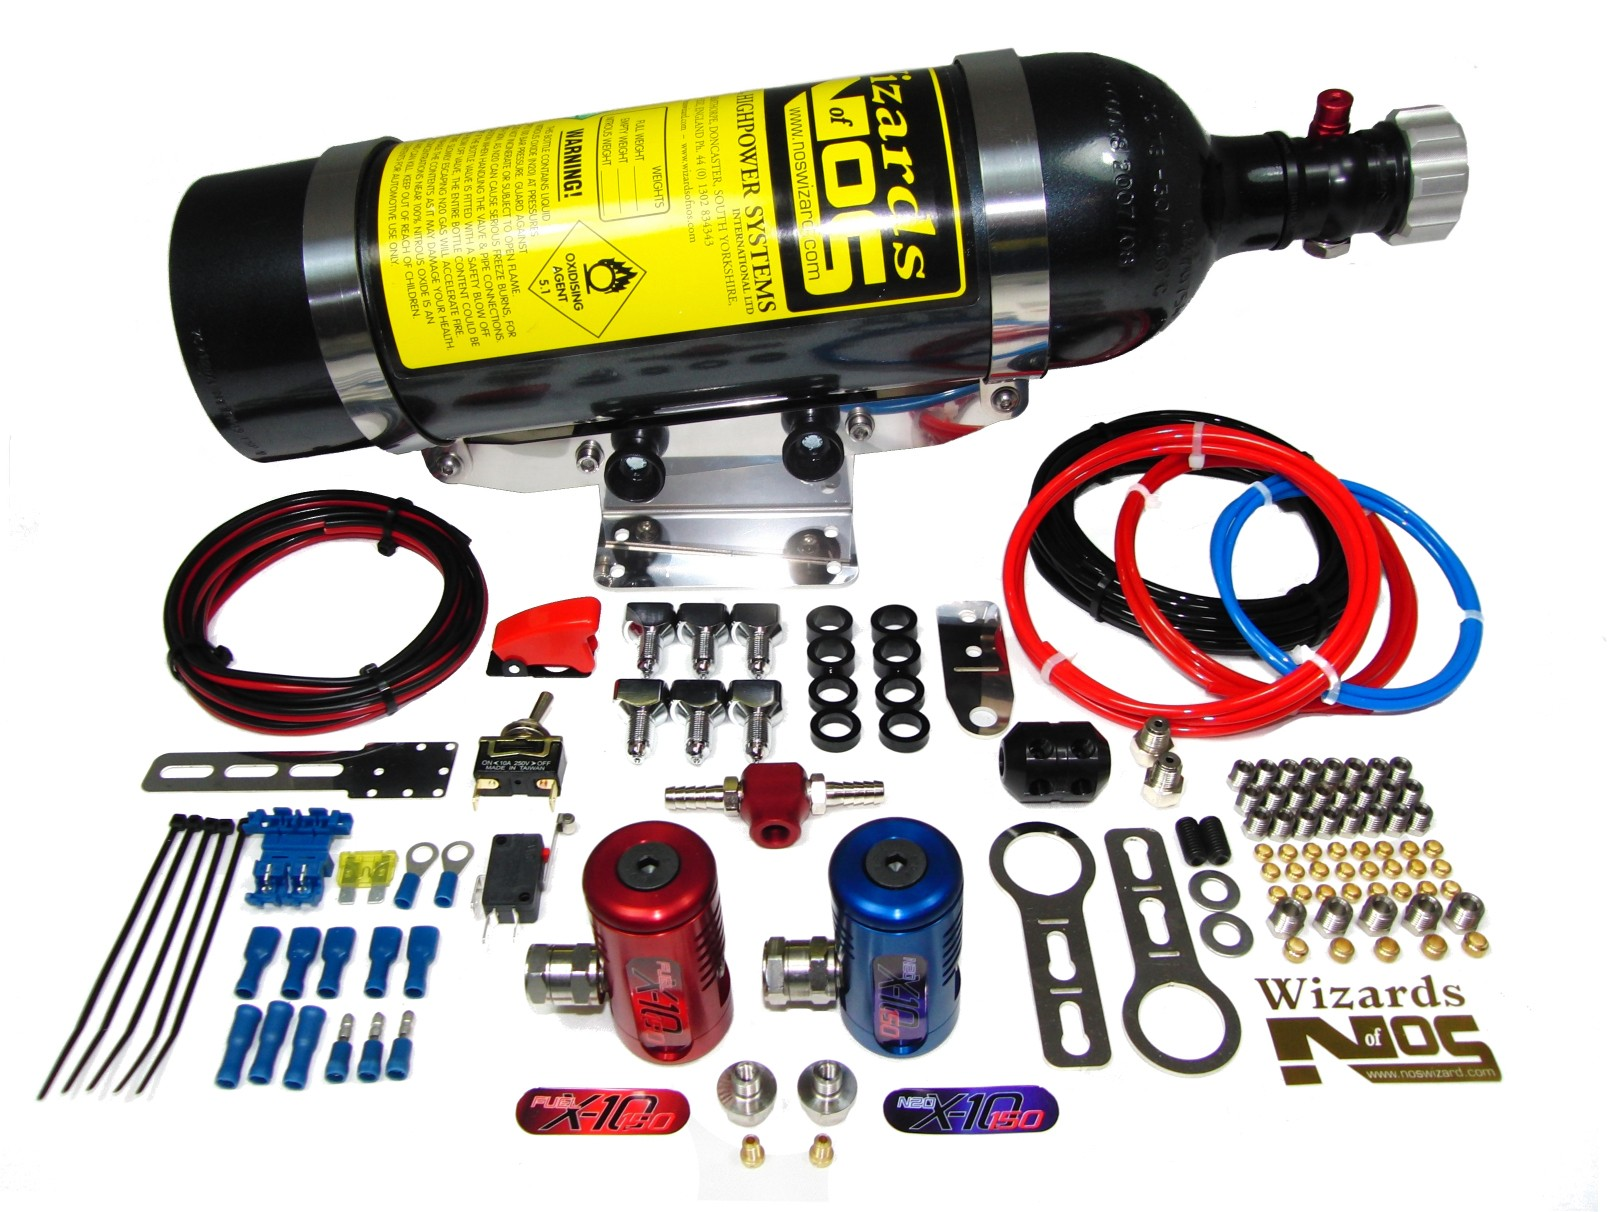 SB150iS6 Nitrous Kit Complete